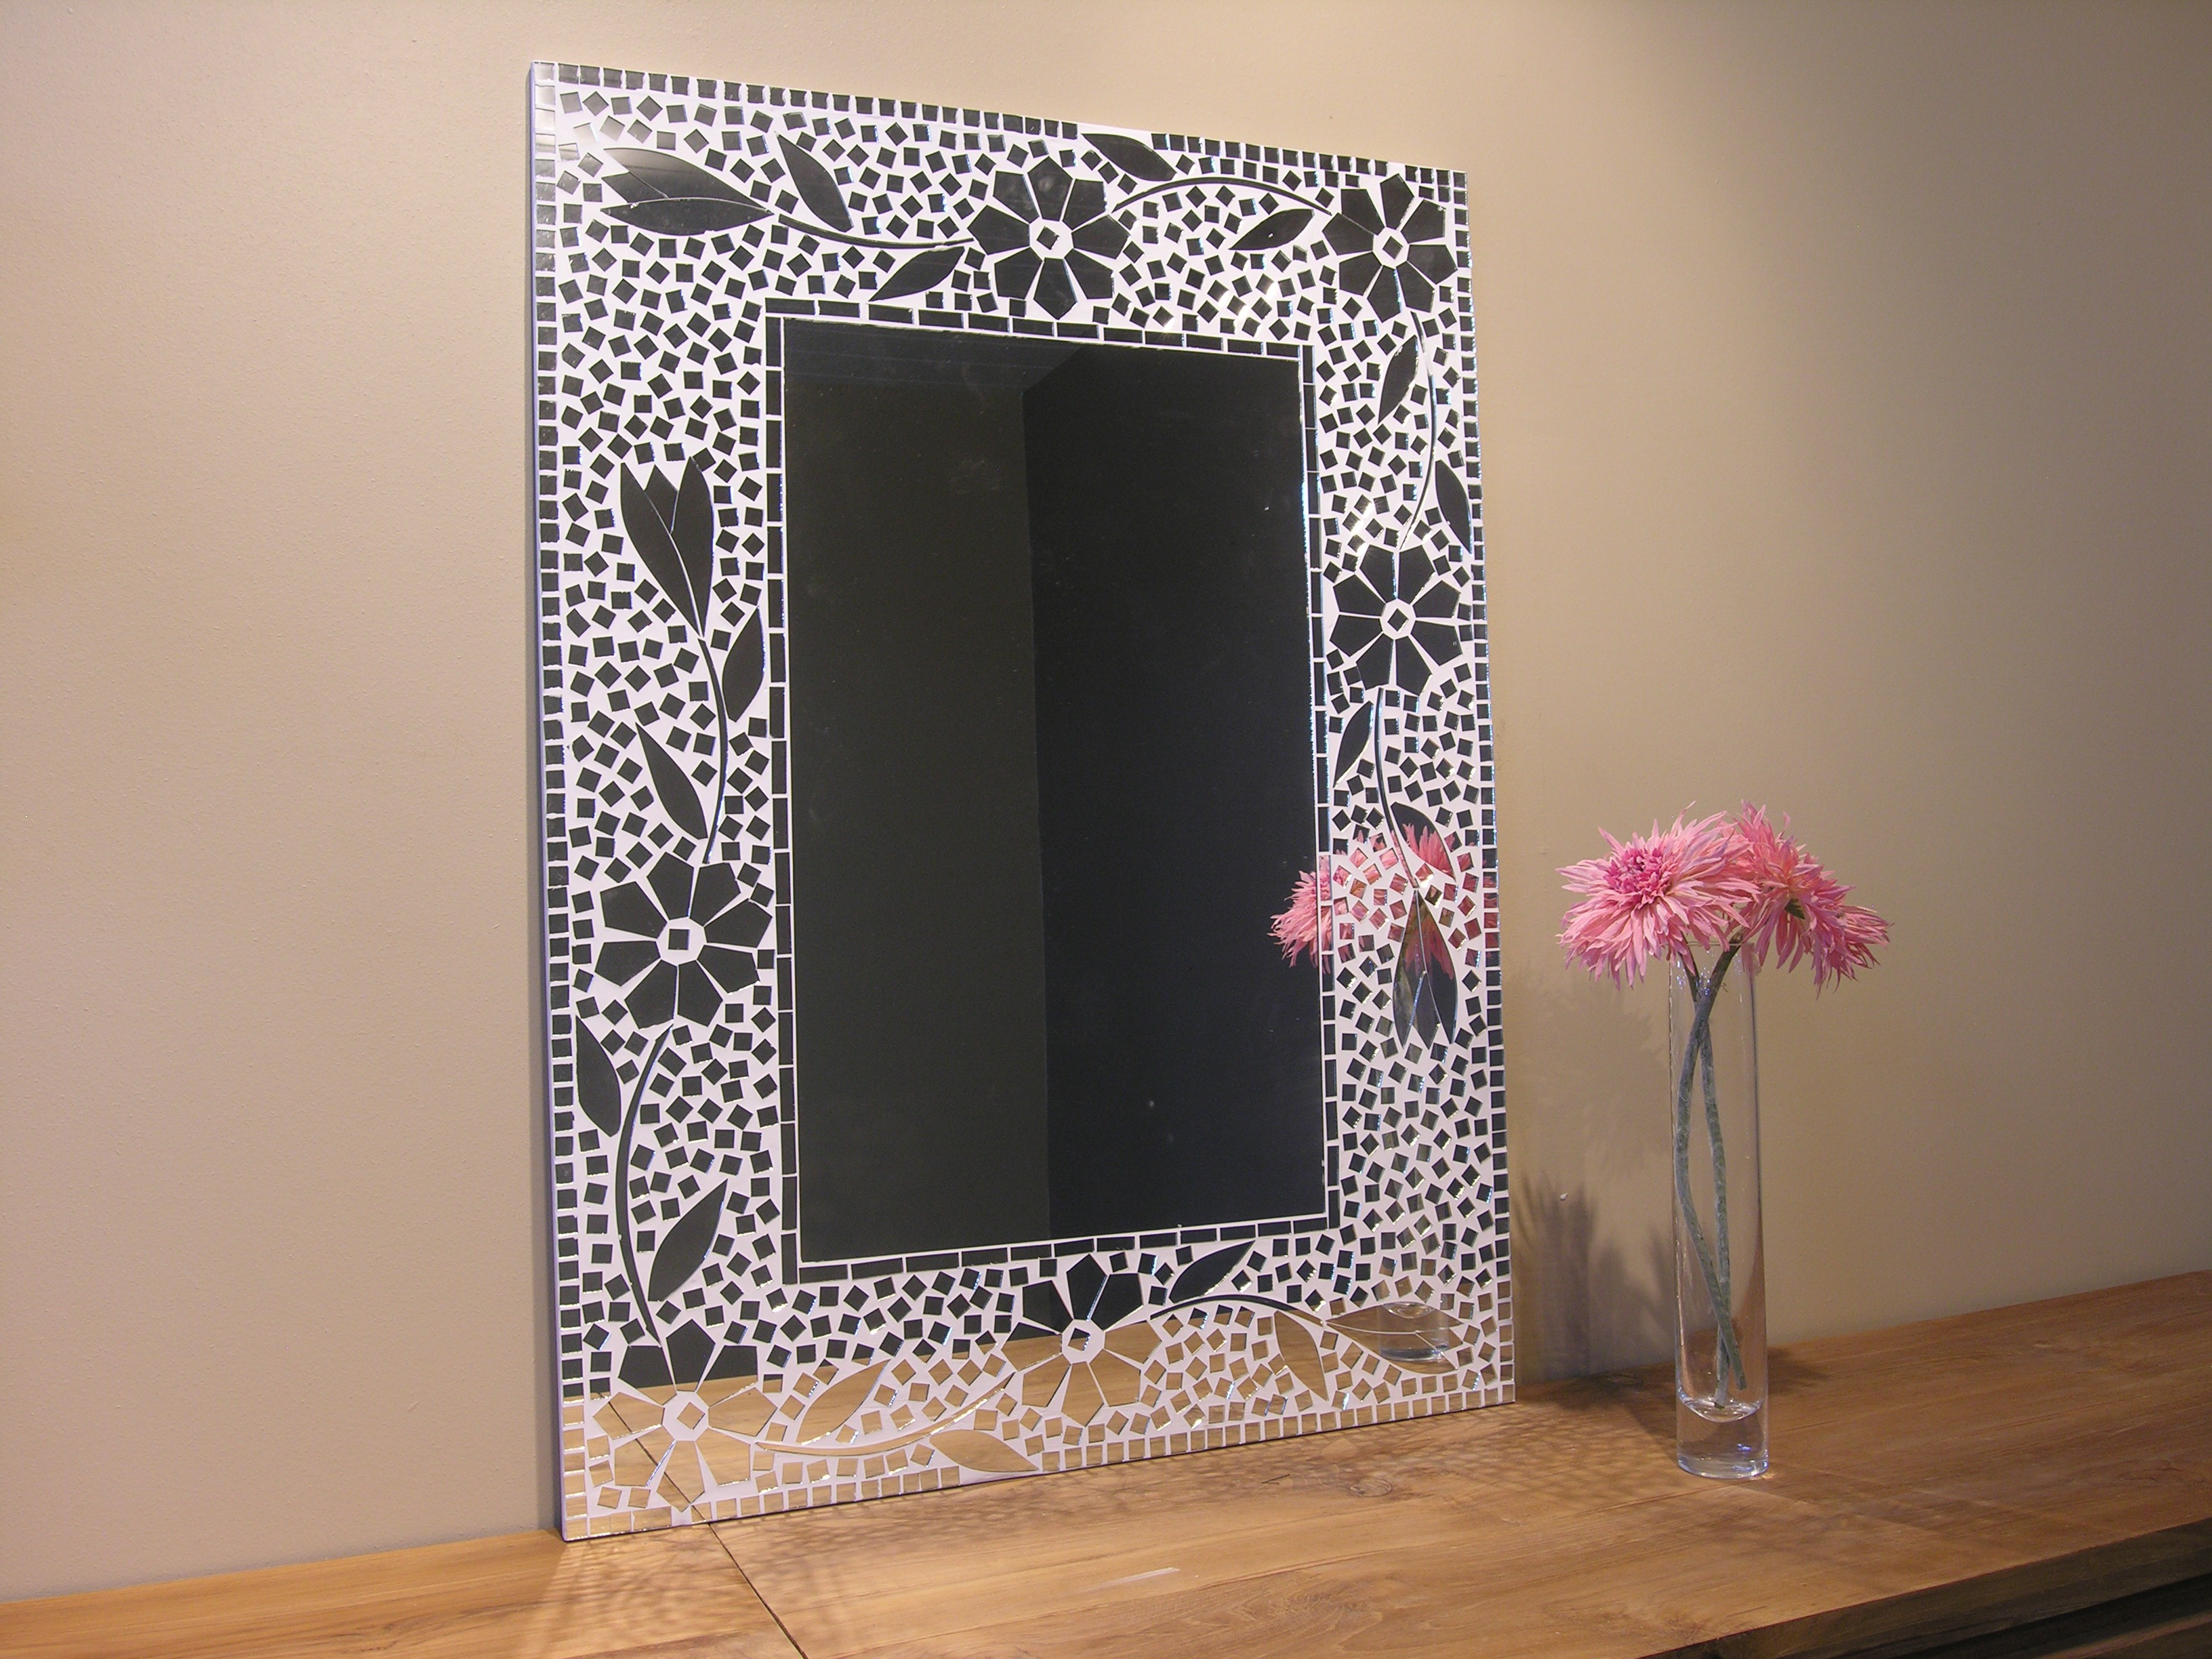 Miroir mosaique design fleur 80cm x 60cm salon chambre for Miroir design salon